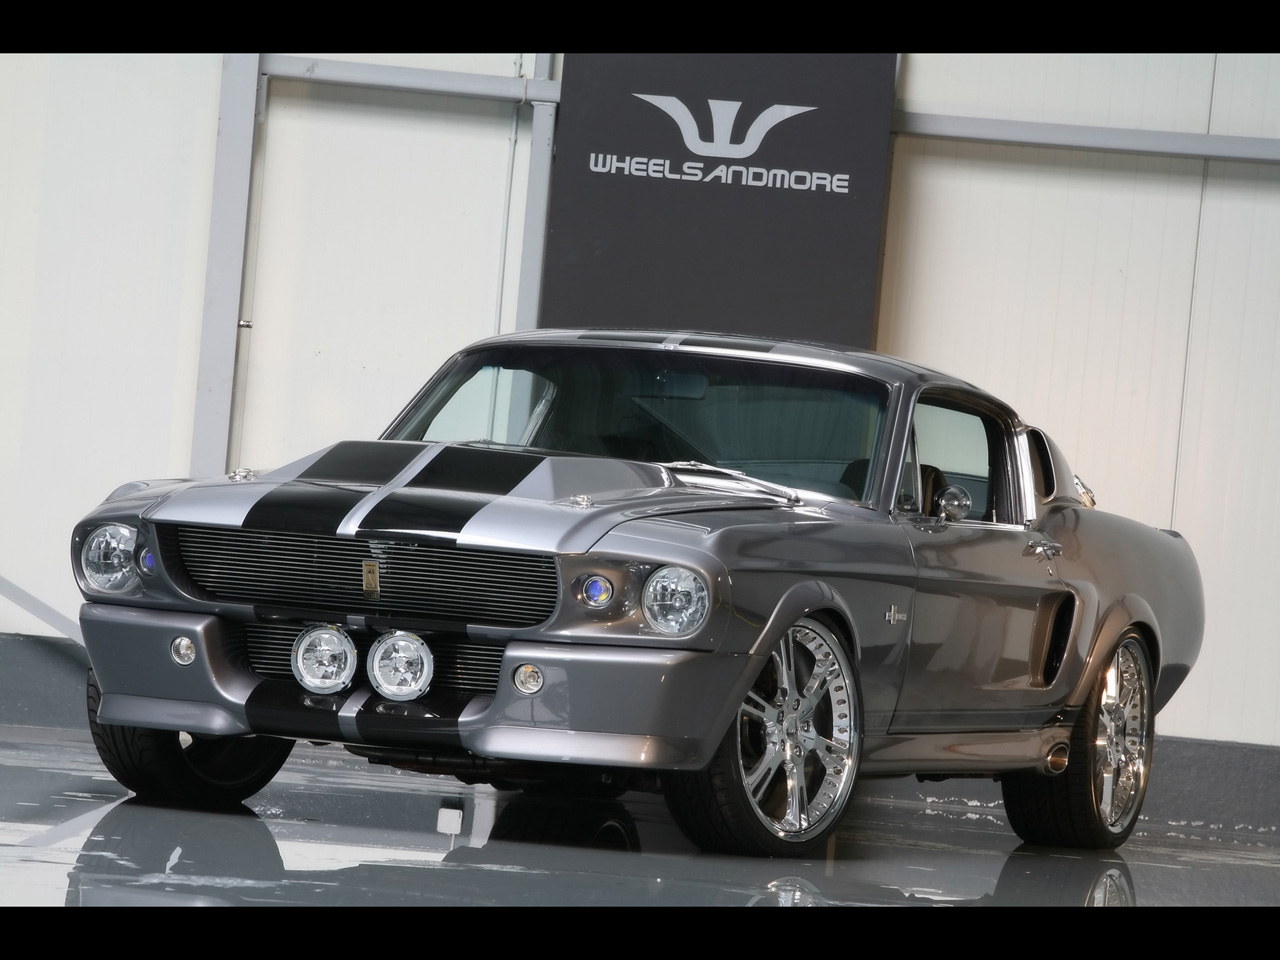 Ford mustang shelby gt500 eleanor by wheelsandmore news tuning ford mustang shelby gt500 eleanor by wheelsandmore ford mustang shelby gt500 eleanor by wheelsandmore publicscrutiny Images